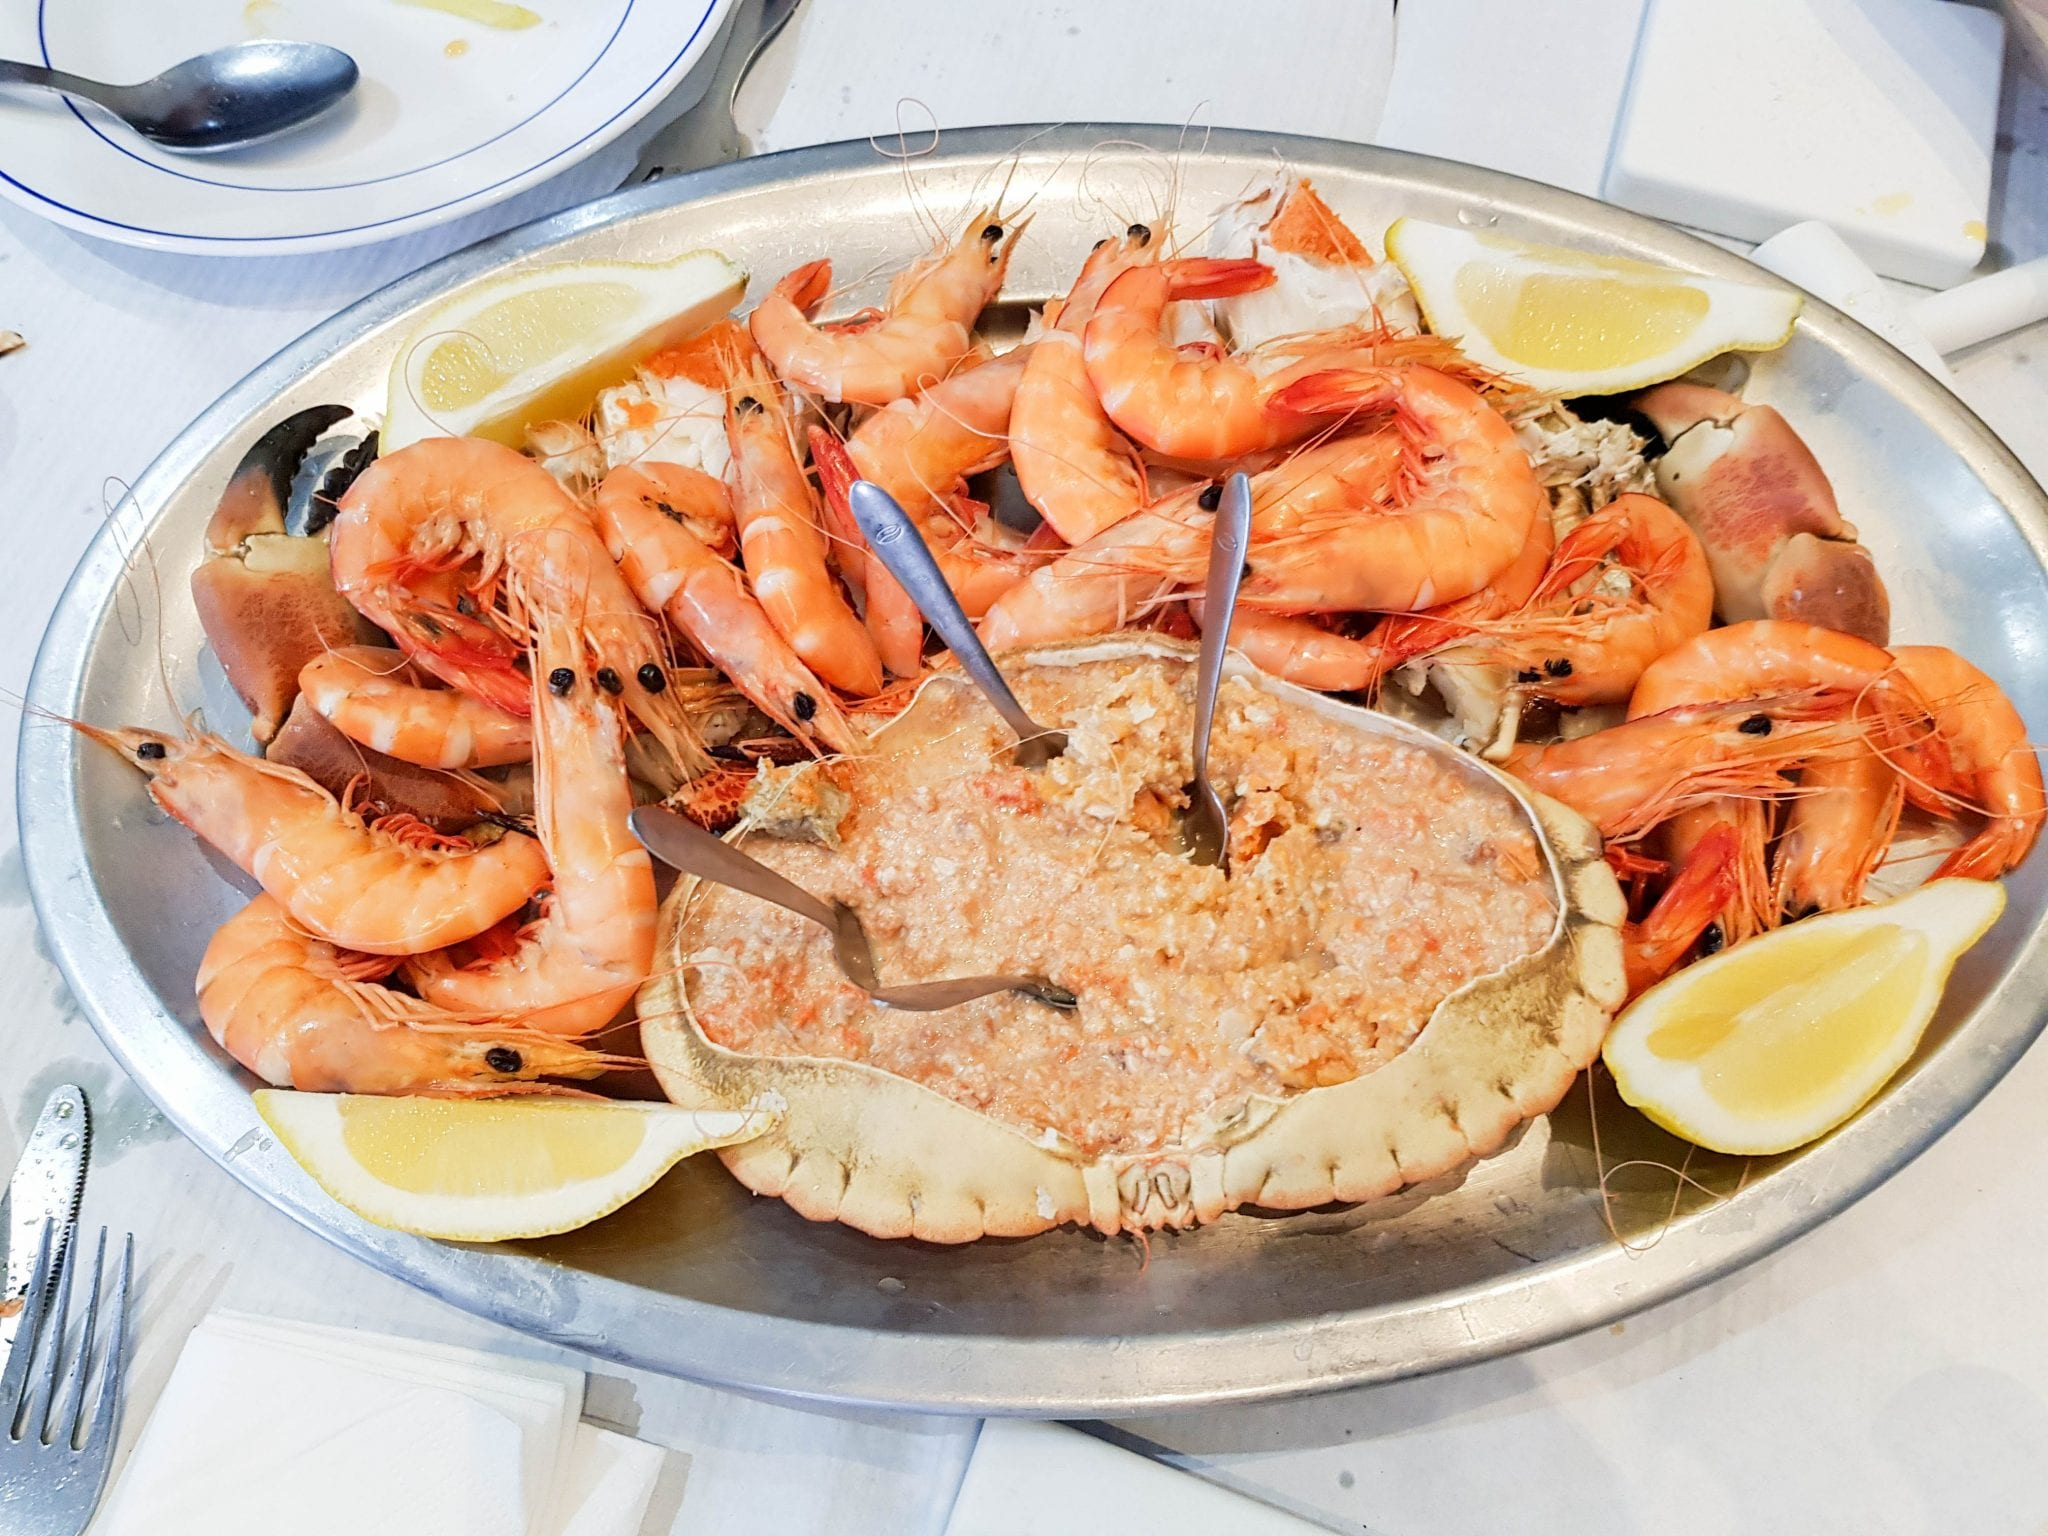 Lisbon fresh seafood - prawns and crab!